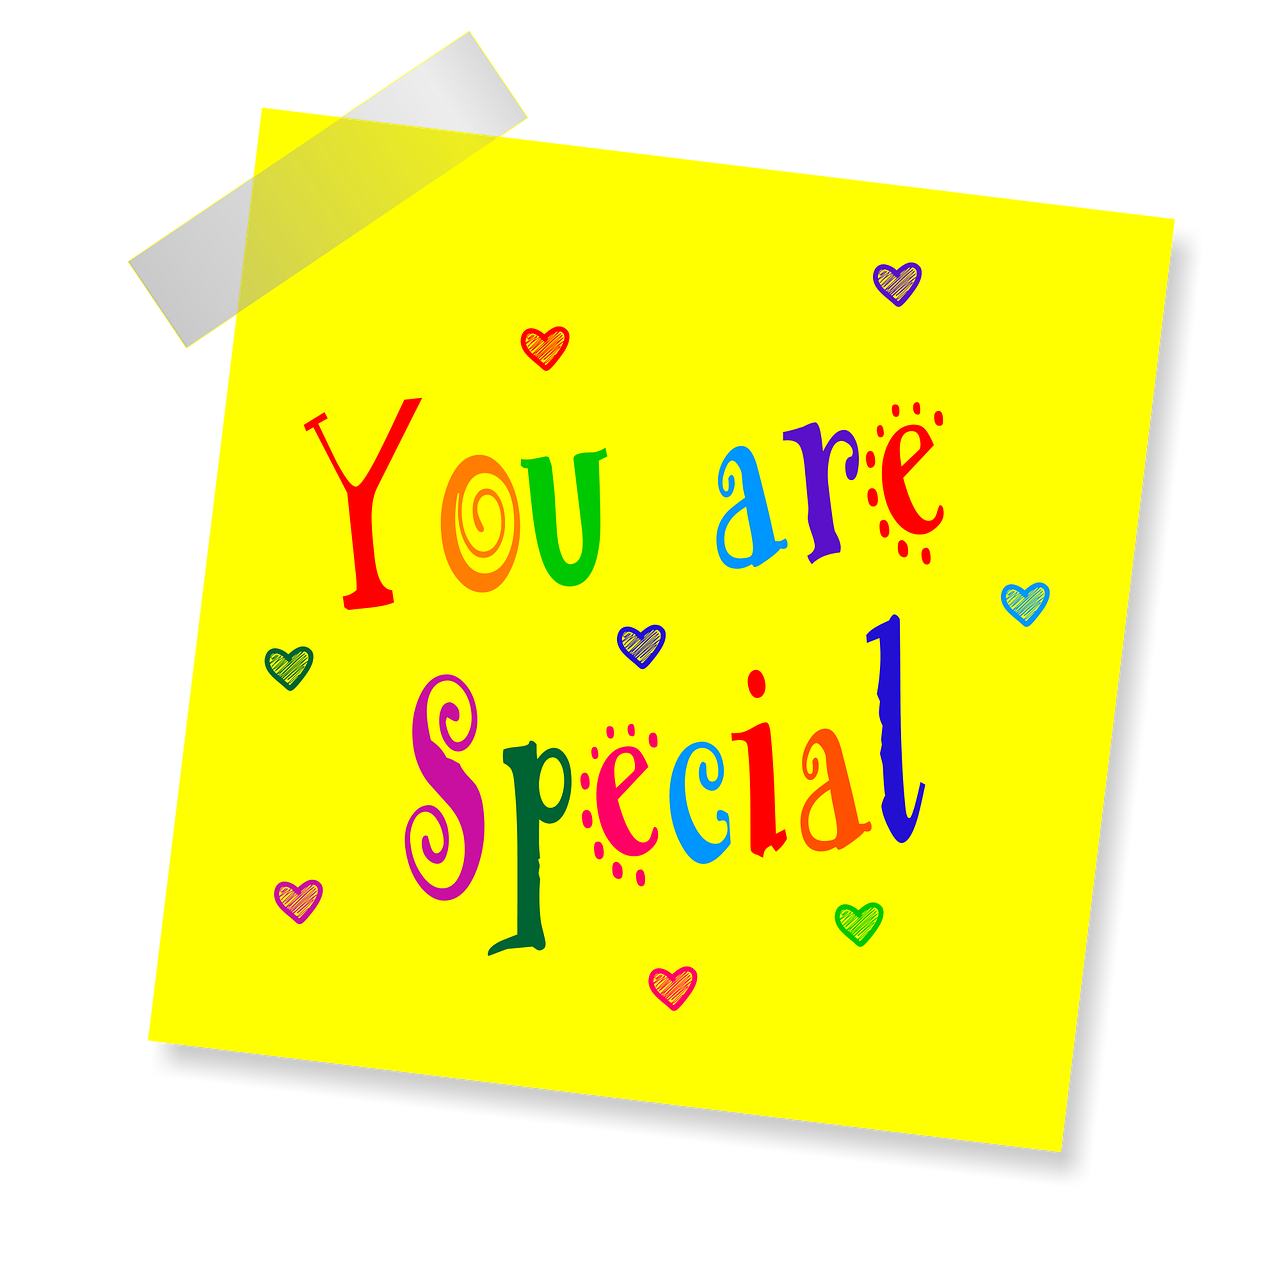 you are special, yellow sticker, note-1470800.jpg